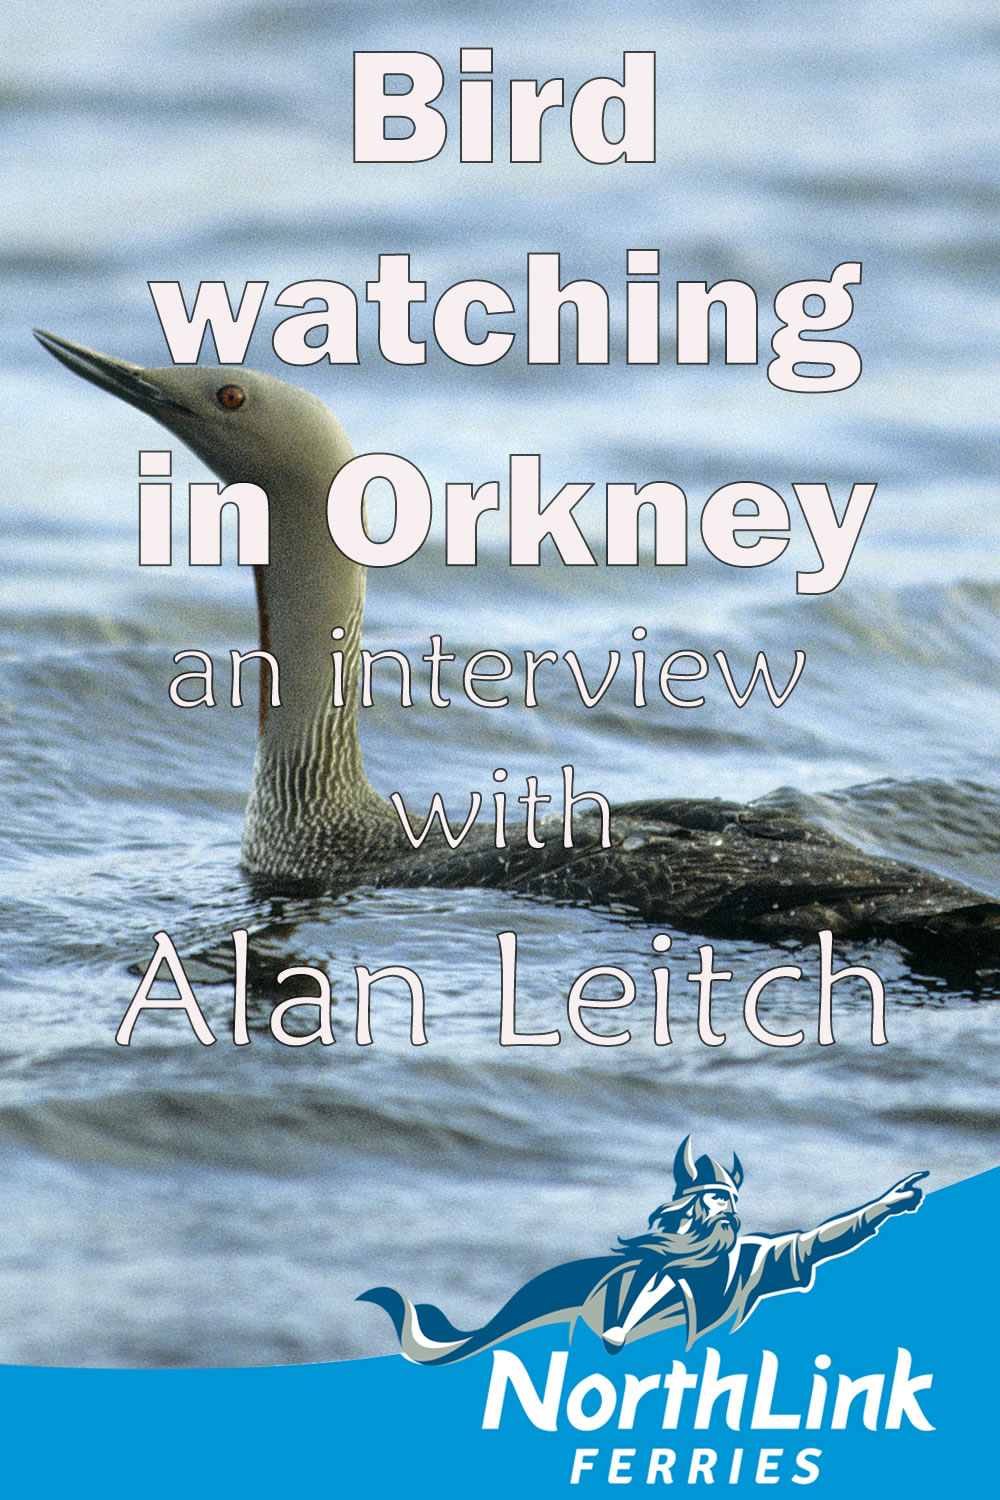 Birdwatching in Orkney - an interview with Alan Leitch